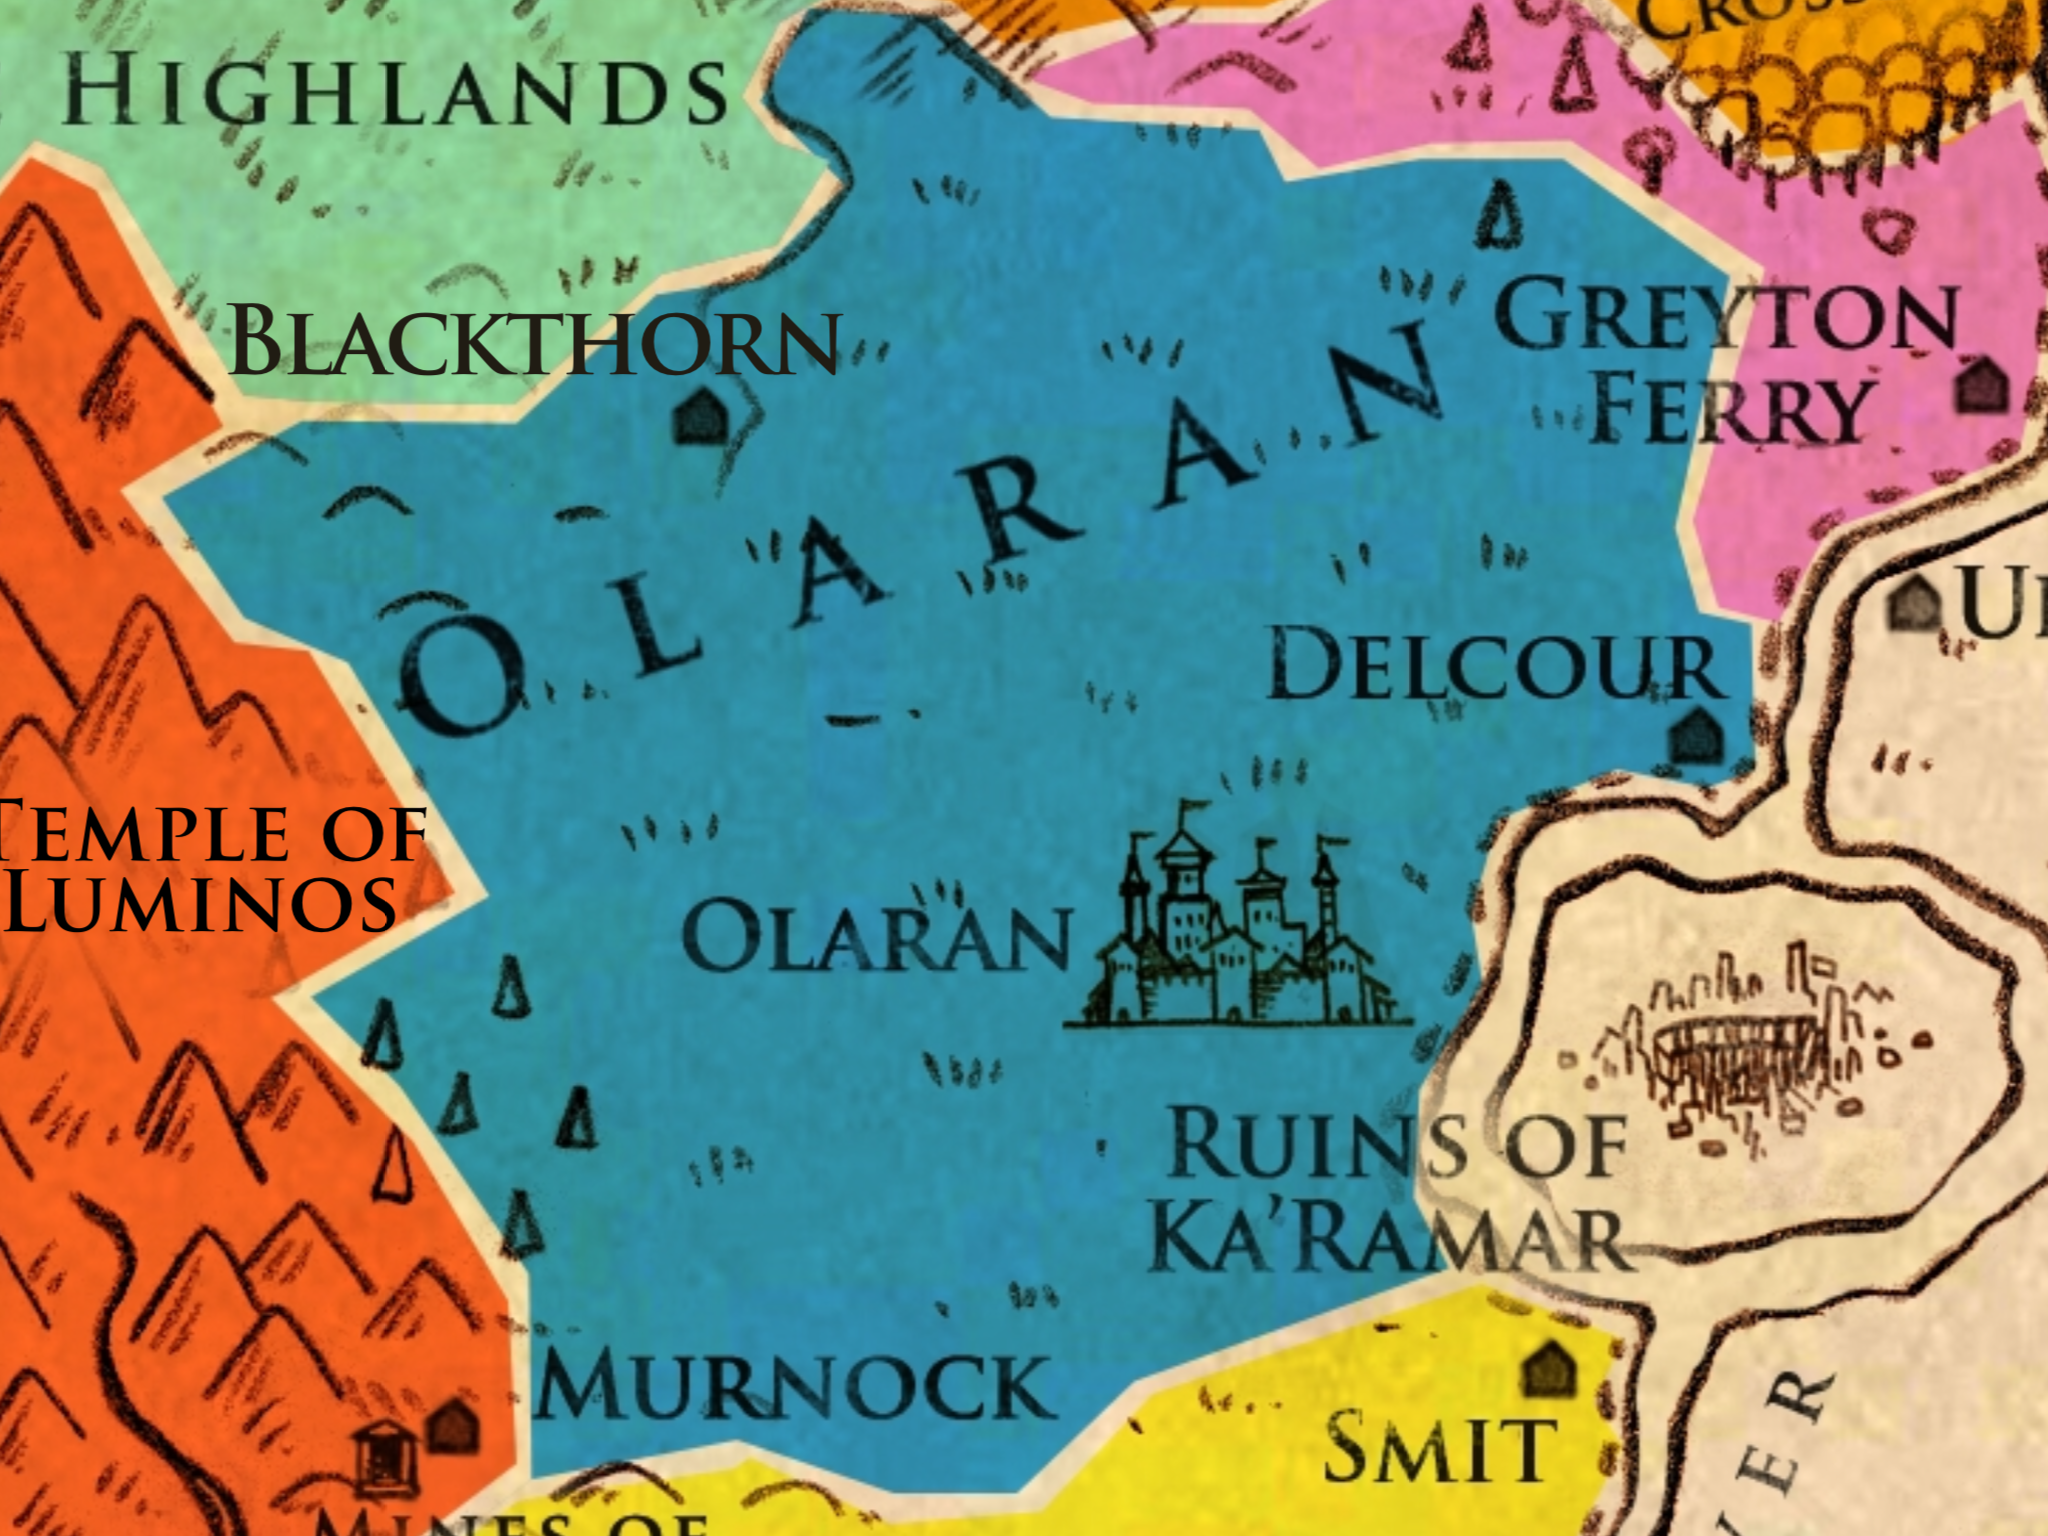 Olaran (Capital) - Known For:The founding province of Olaran, it contains the Kingdom's capital city - Olaran.Key Households:Royal house of O'Reyne - The ruling house of Olaran, currently headed by King RangarTopography:Generally a region of plains and grasslands, with a small region of forests on its western border near the Fire Mountains. Its eastern border is the Keldaran River.Economy:The majority of the province consists of farmlands that produce grain. The capital city is a trade hub due to its access to the Keldaran River, on which resources and goods are shipped between the northern lands of the Kingdom, neighboring Arkadia to the east, and Goltha to the south. A majority of the wealth in the region is due to taxes collected from the other 8 Provinces. It is the political center to the Kingdom of Olaran.Major Cities:Olaran - The Capital City of the Kingdom of Olaran, this vast city is surrounded by walls on all sides, and has some of the highest towers in the kingdom. It is a trade hub for the kingdom's goods that are shipped along the Keldaran River.Other Cities:Delcour - A city on the Keldaran River that is a popular stop for those travelling between the Capitol and Greyton Ferry. Sometimes known as the Northern Gateway and is of strategic importance in protecting the capital. It is the sister city of Smit in the south.Blackthorn - The westernmost city of Olaran, this city sits at the end of a small river that starts in the eastern leg of the Grimmock Mountains. It is a hub for farmers and traders from The Highlands to the west and the farmlands of Olaran to its east.Locations of Note:The Royal Palace - Seat of power in Olaran, houses the royal family and the Throne's Council.The Academy of the Kingsmen - Many of the high houses of the kingdom send their best and bravest young to serve in the capital. They begin their training at the Royal Academy of Kingsmen, where they are educated by scholars from all over Adrasil and steeped in the ceremony and protoco